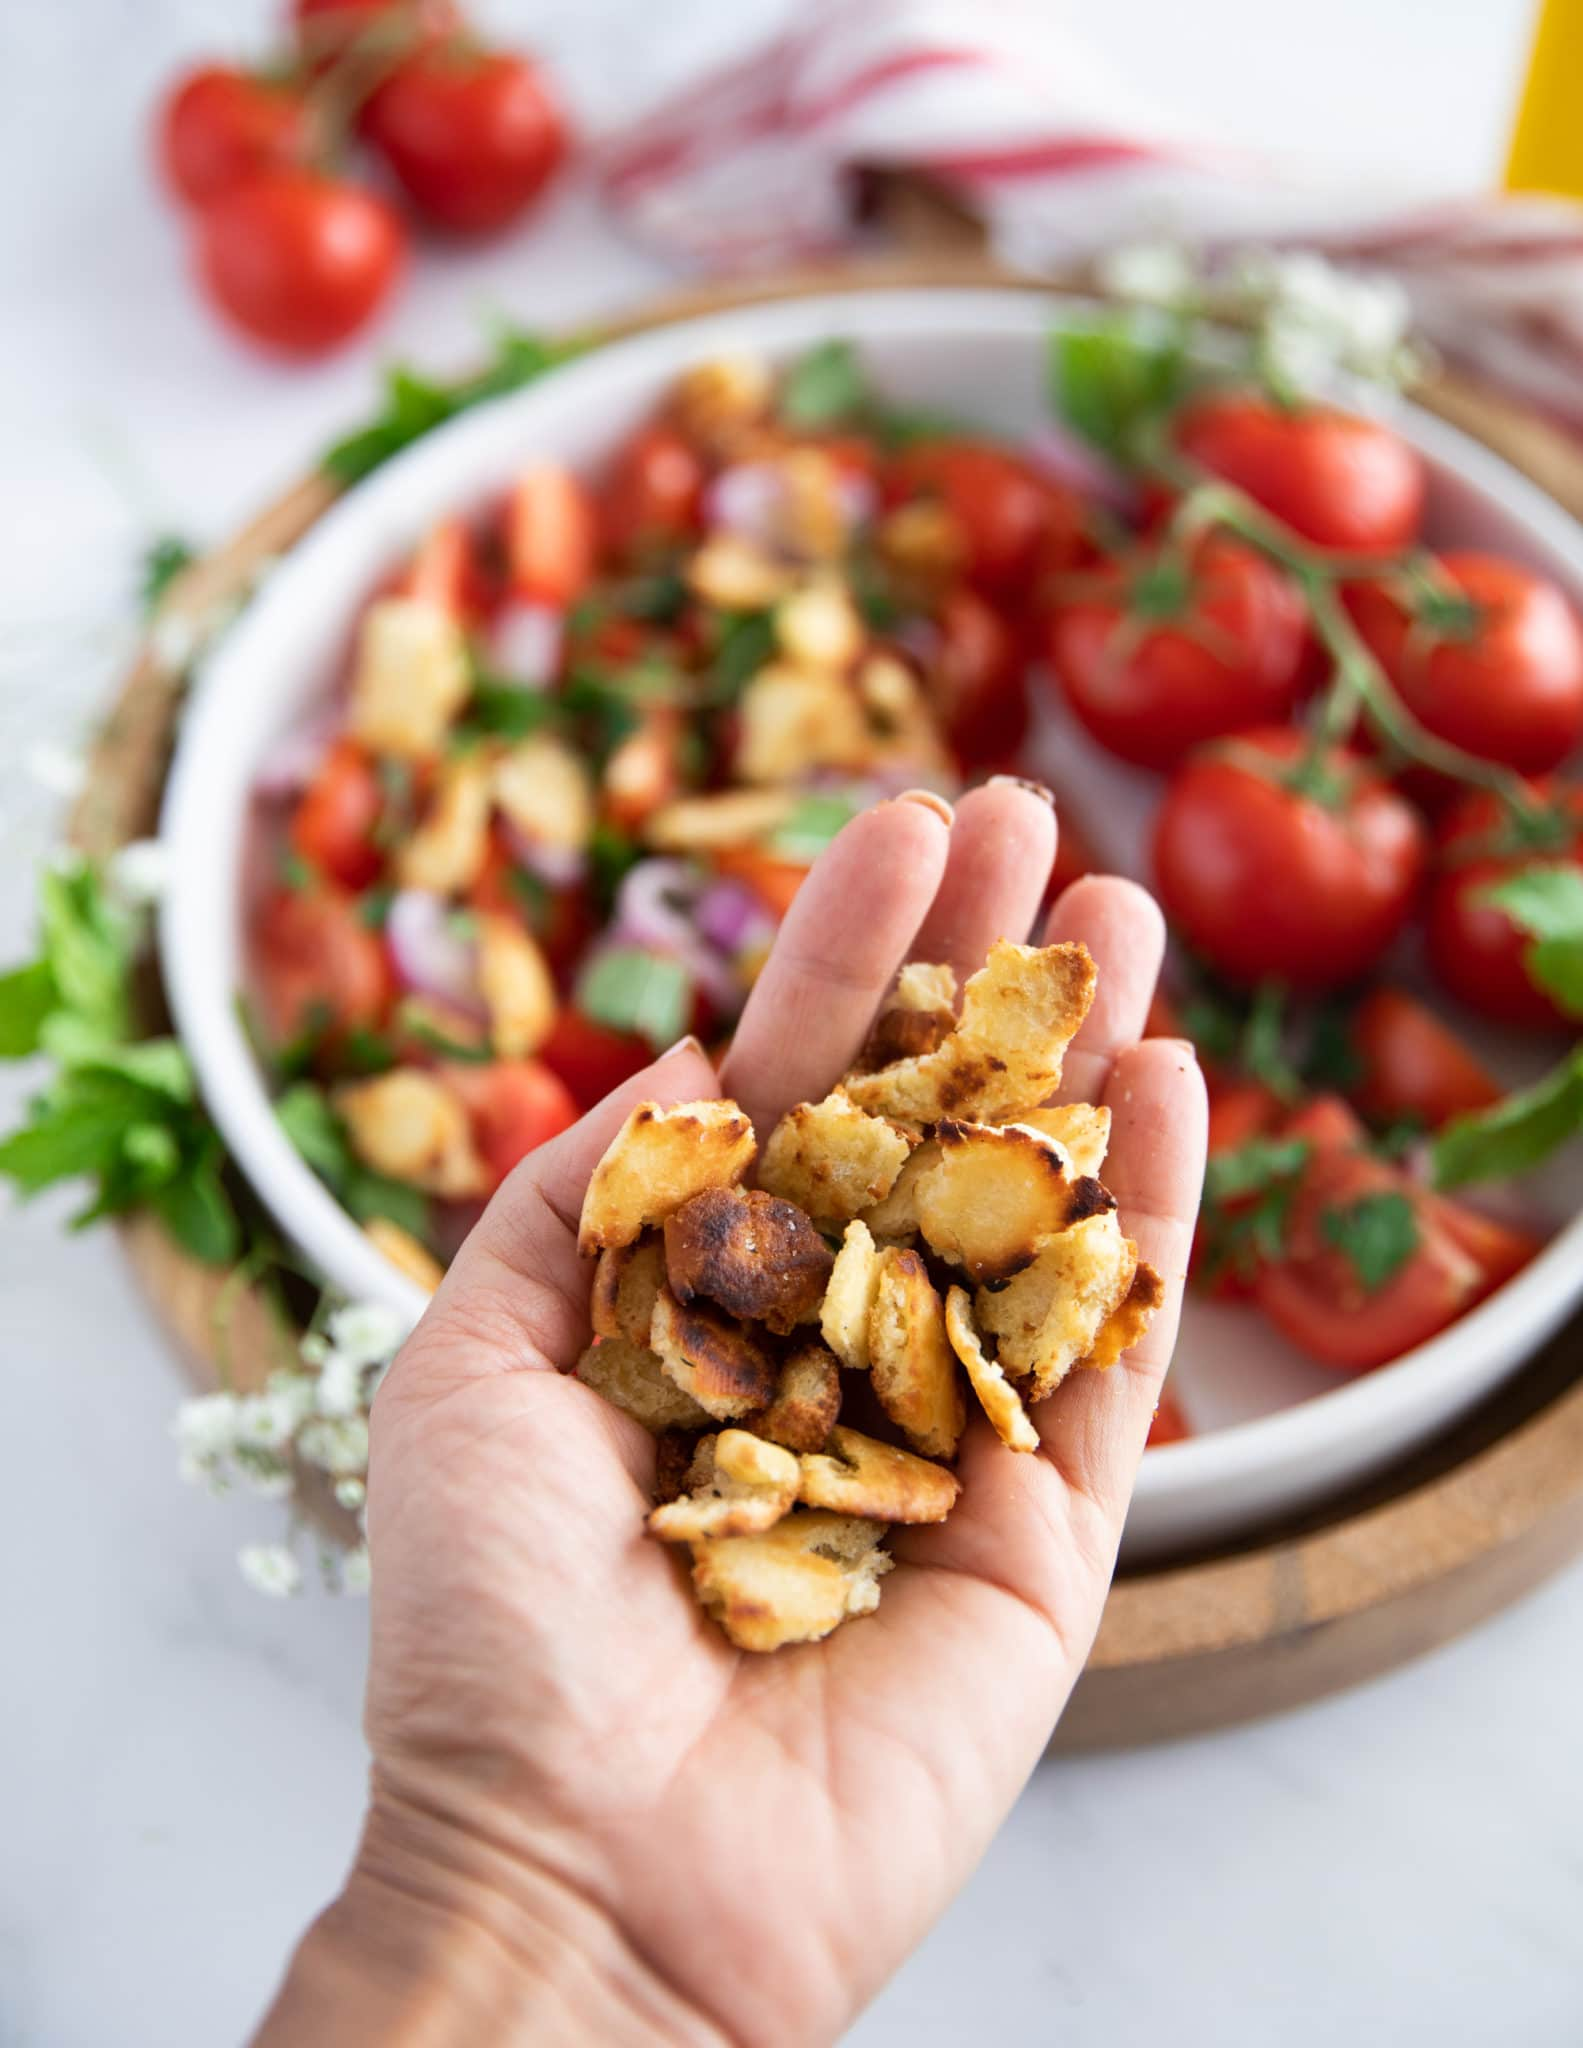 A hand holding the toasted bread chunks ready to toss into the salad